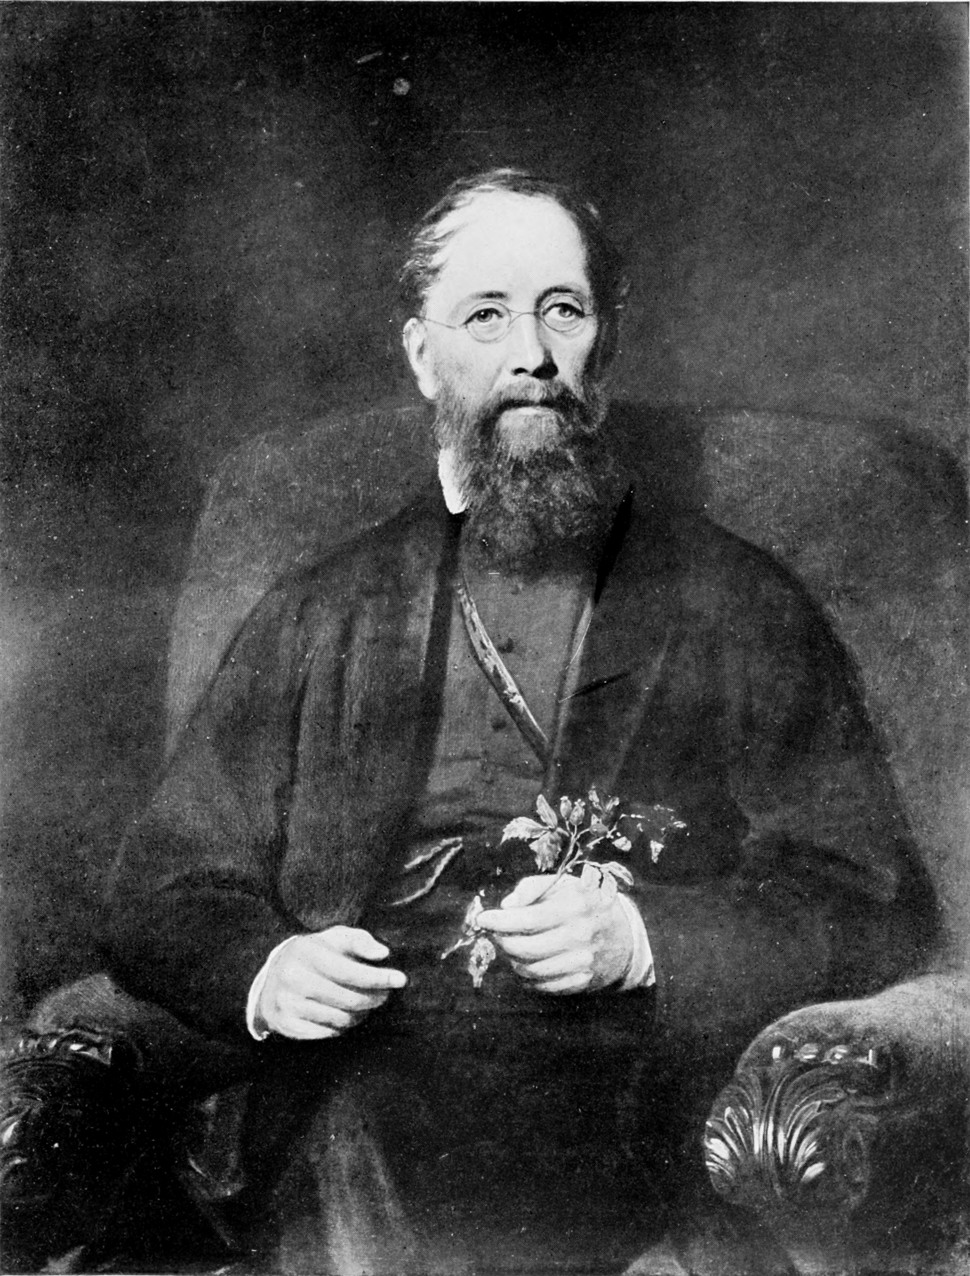 Portrait of John Lindley c. 1865